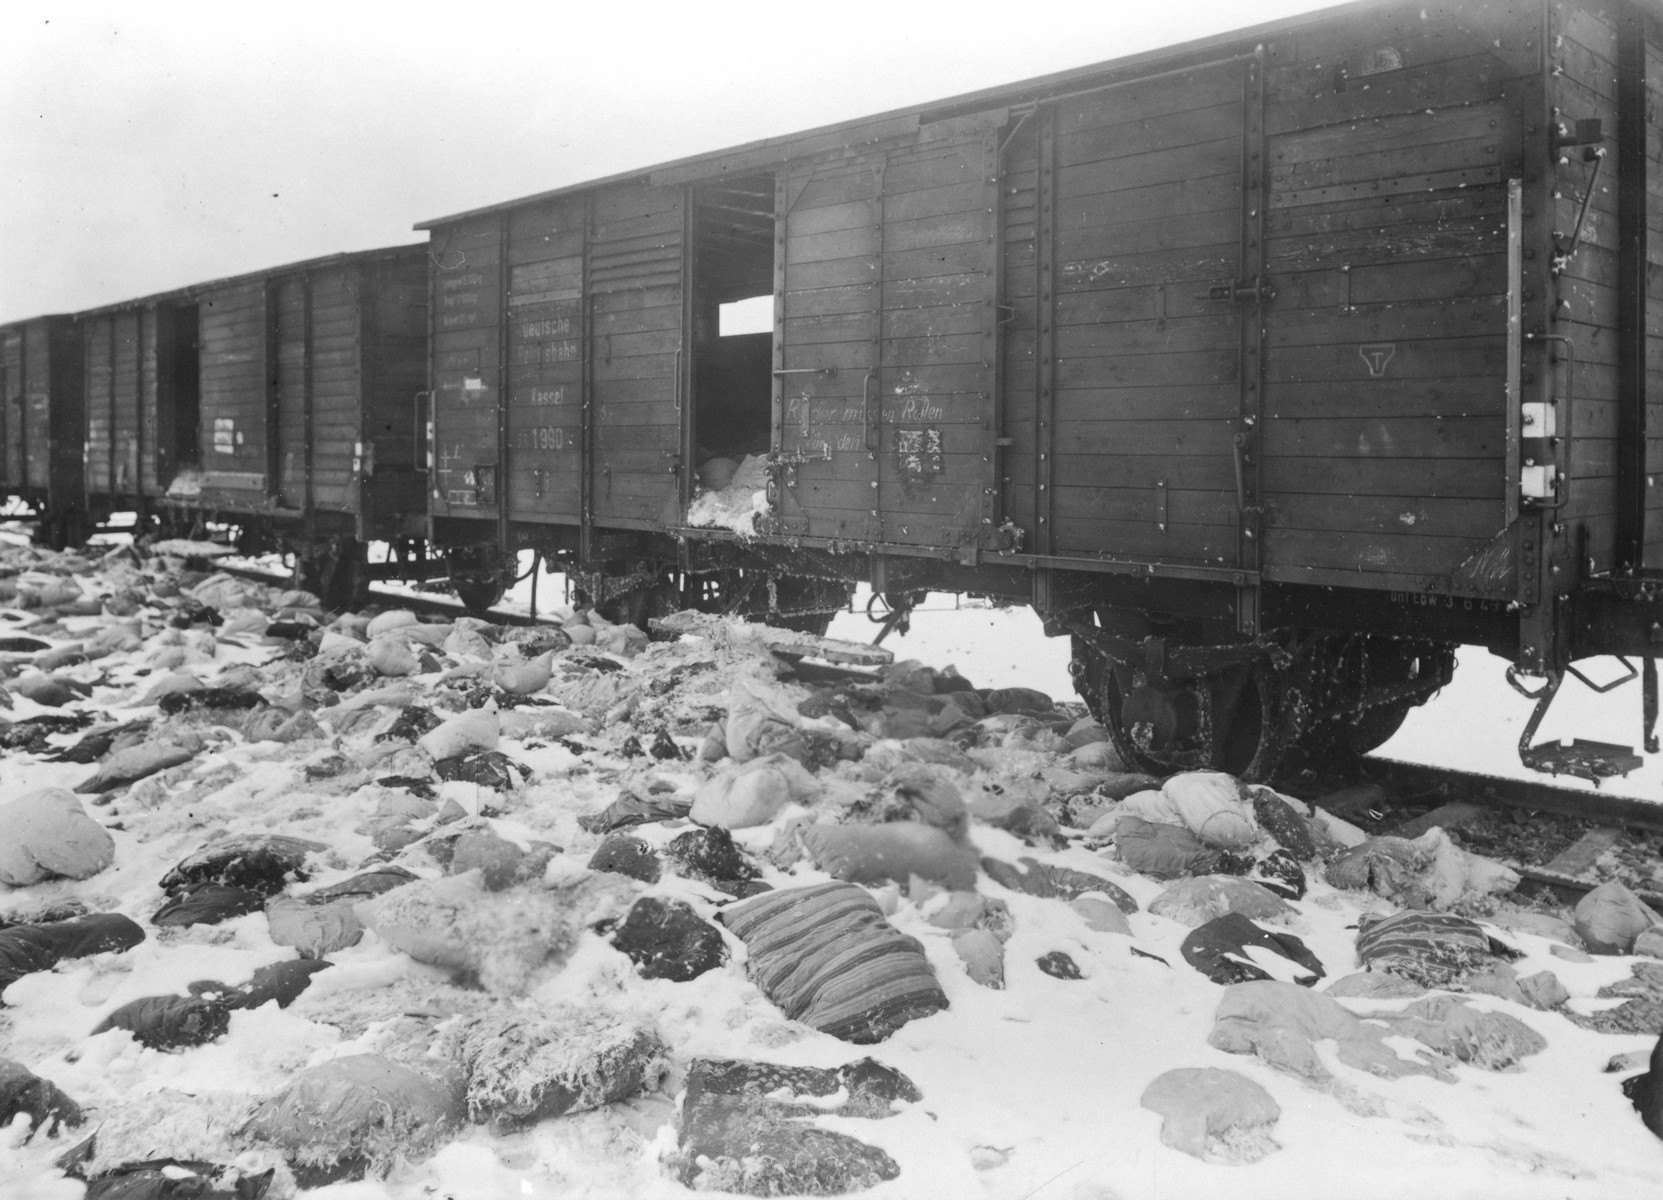 View of the abandoned train that was on the way to Germany loaded with the personal effects of Auschwitz victims.  Some of the freight  lies scattered and partially buried in the snow outside the train.